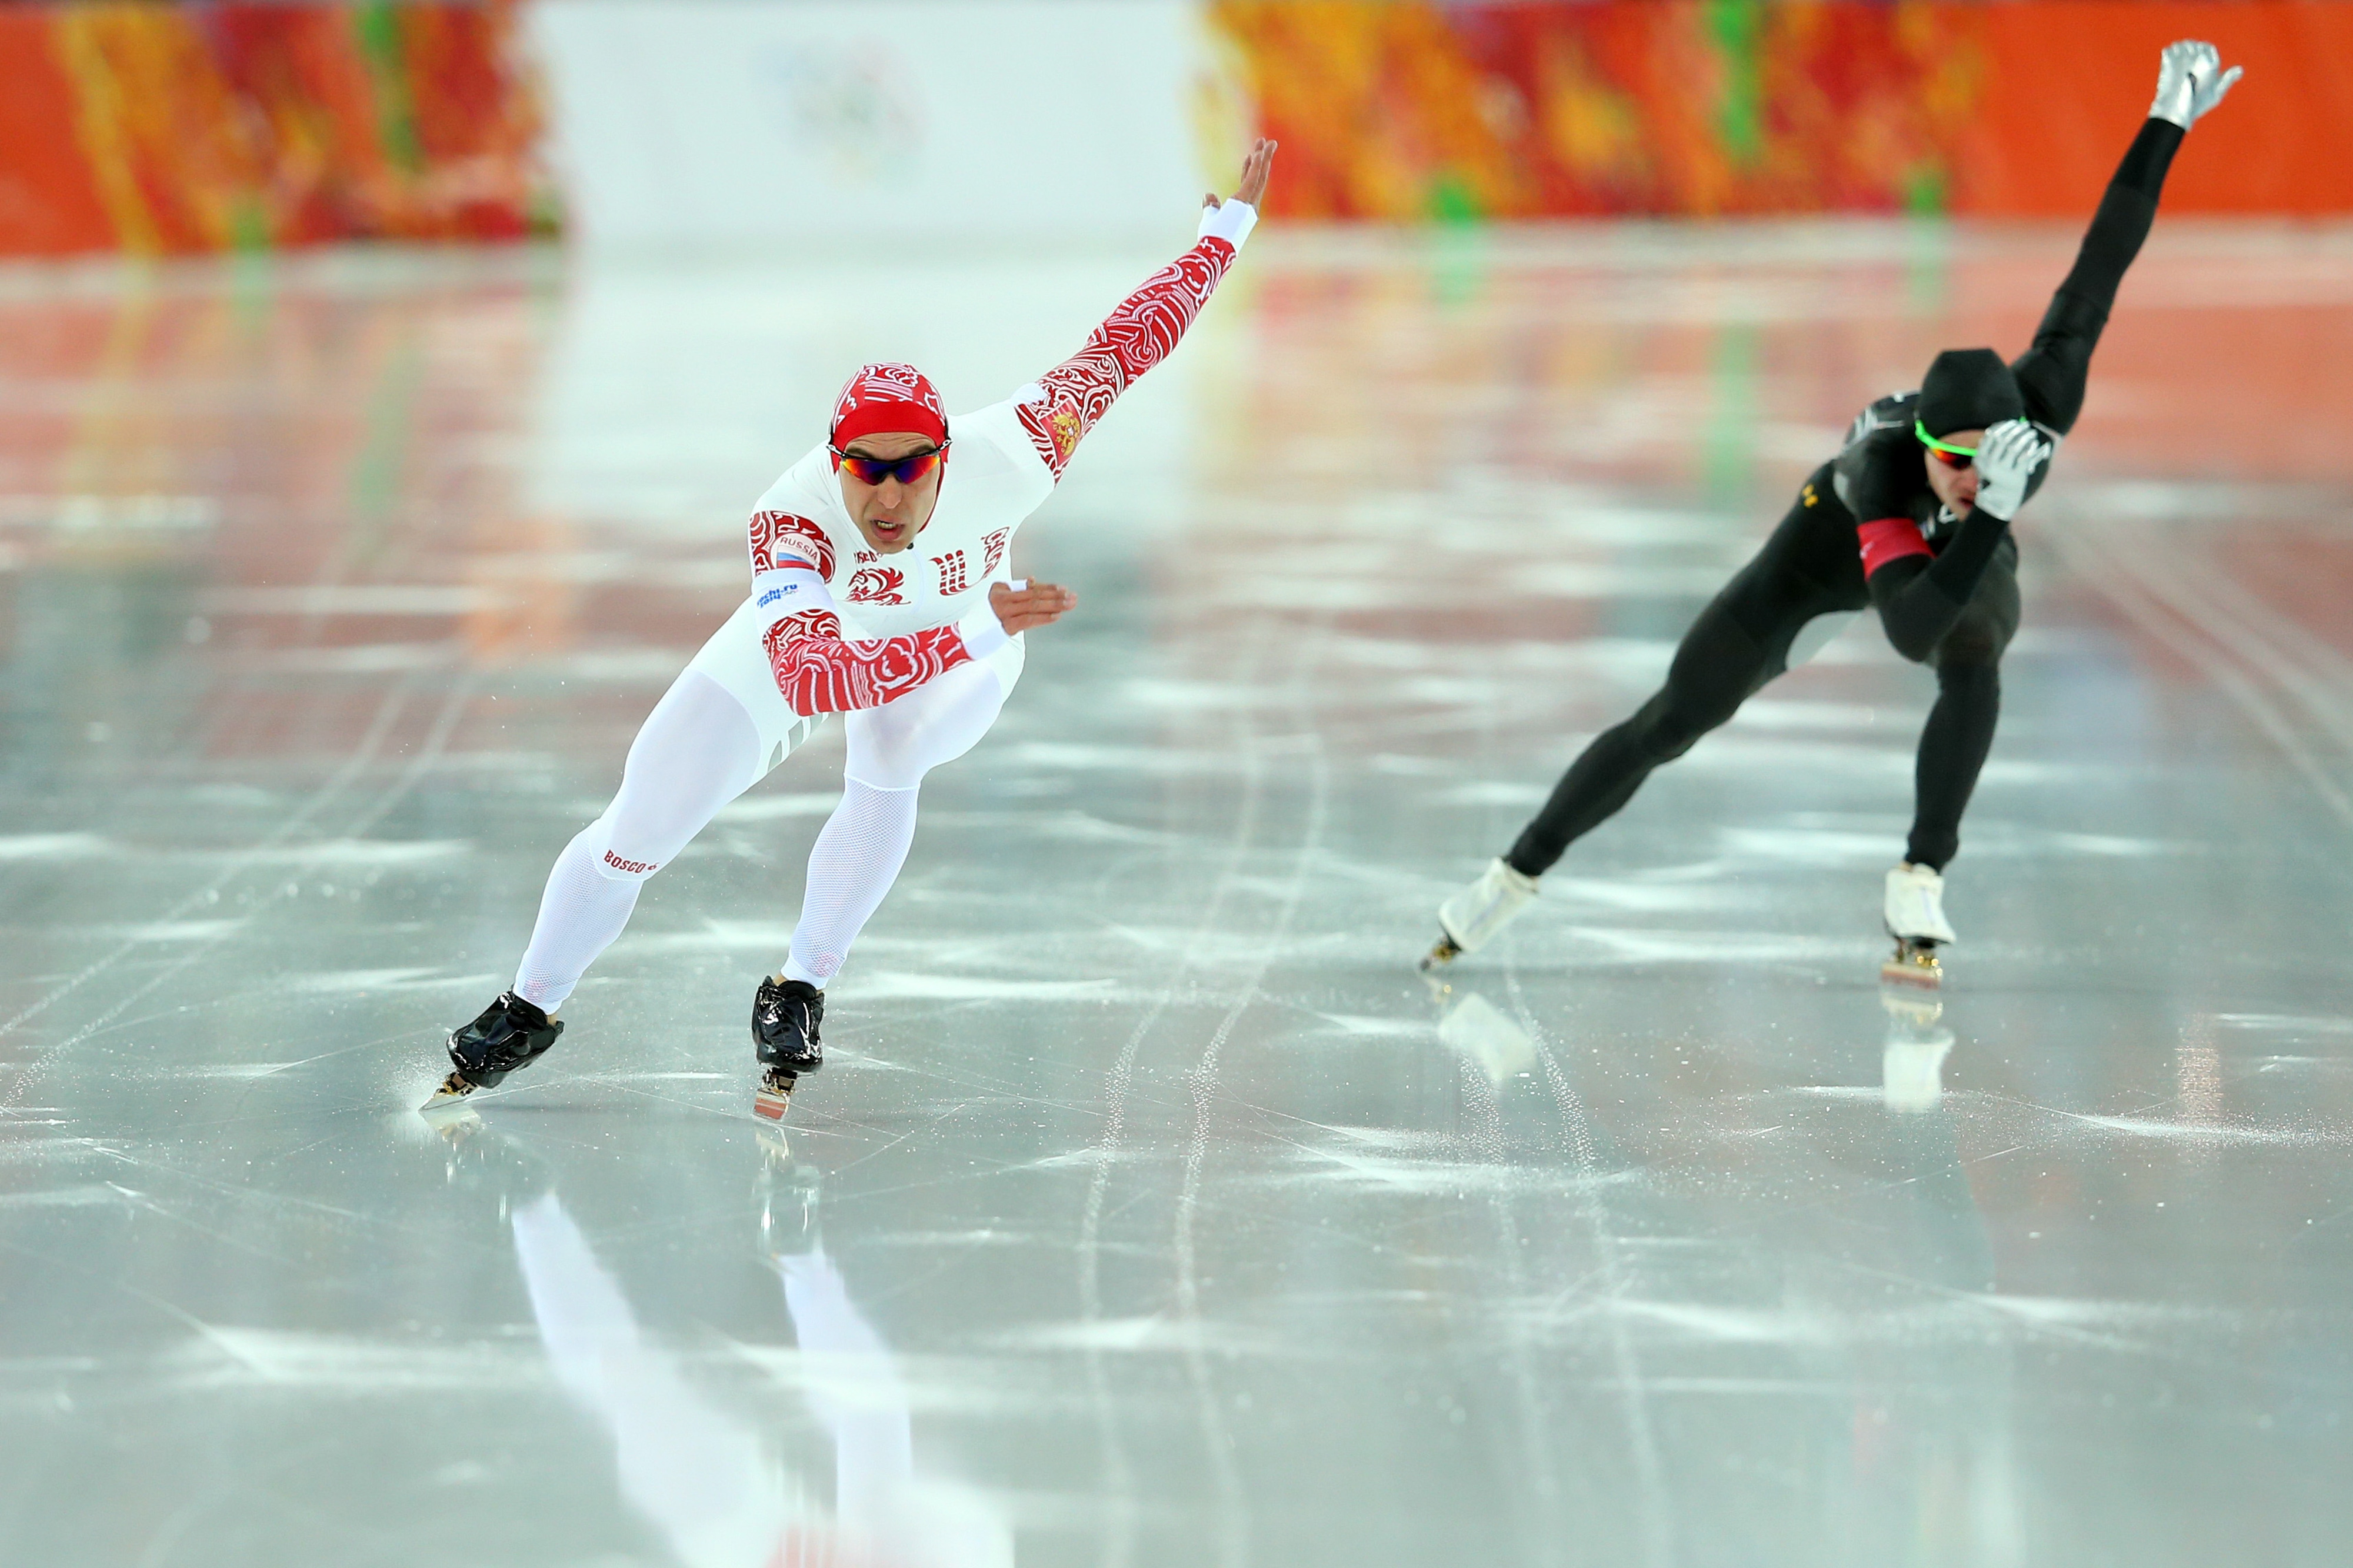 2014 Winter Olympics medal count: Canada takes top spot